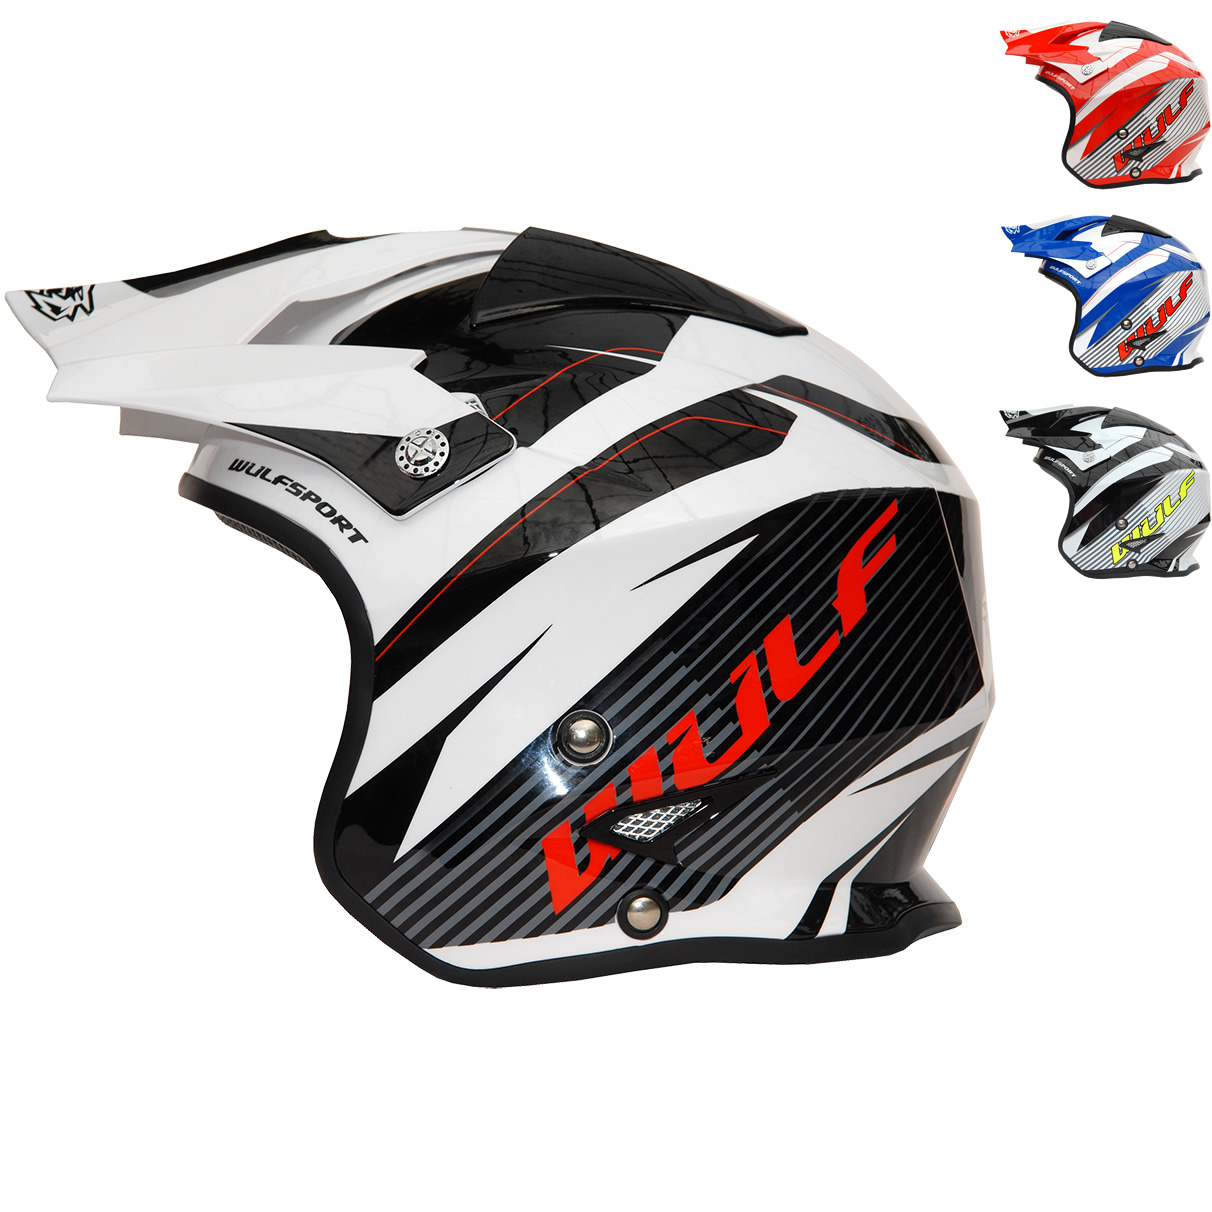 53-54cm Wulfsport Adult Vista Trials Motocross Helmet Motorbike Motorcycle Open Face Helmet With Visor White XS